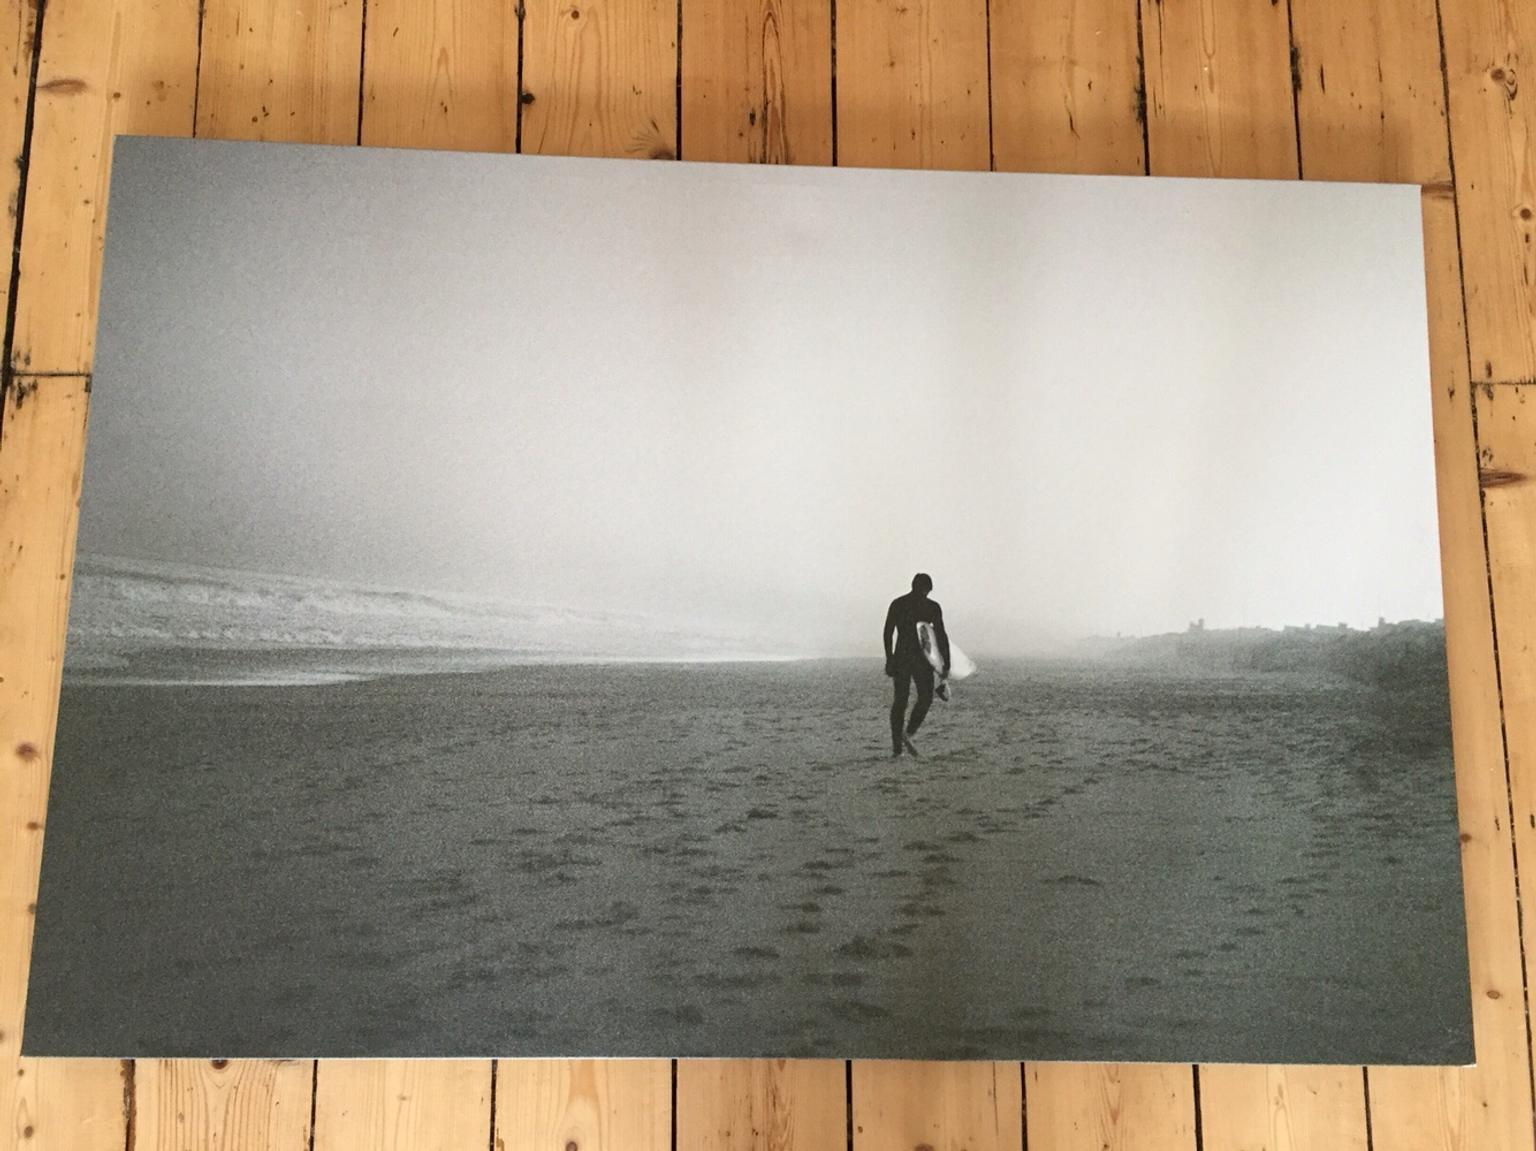 Used IKEA Large Canvas Print In BS8 Bristol For £ 10.00 U2013 Shpock